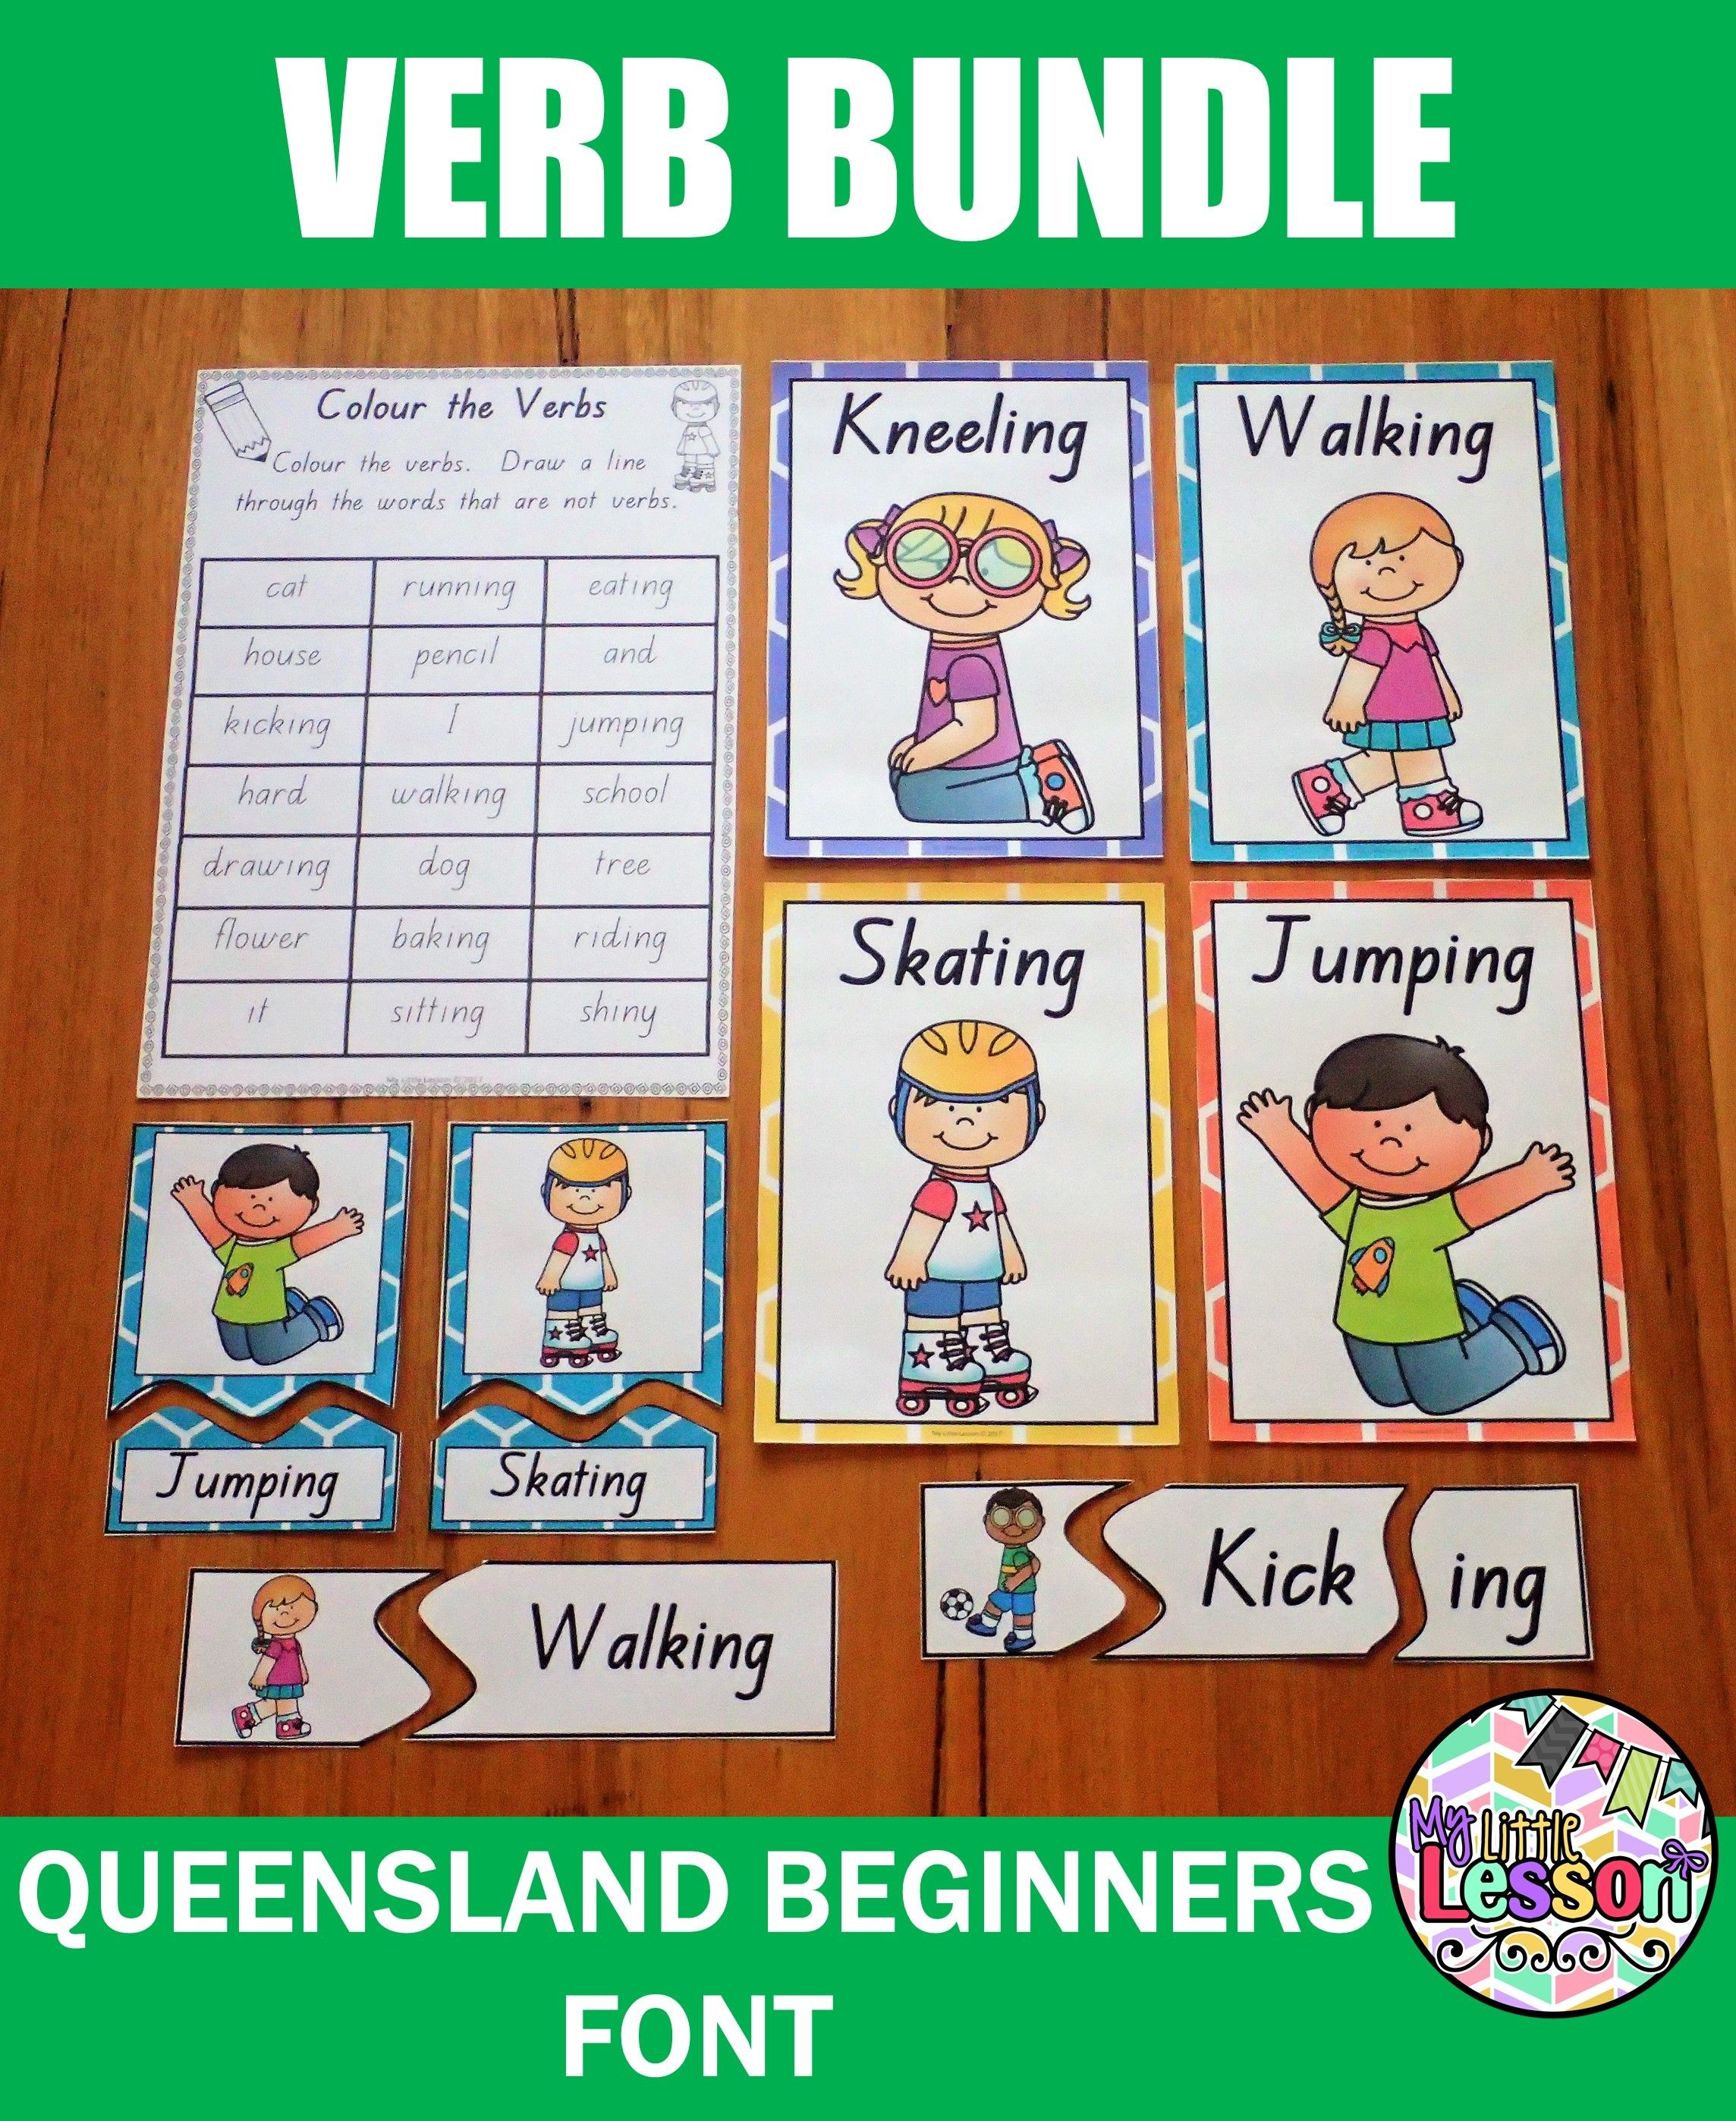 Verb Bundle Qld Beginners Font Worksheets Posters And